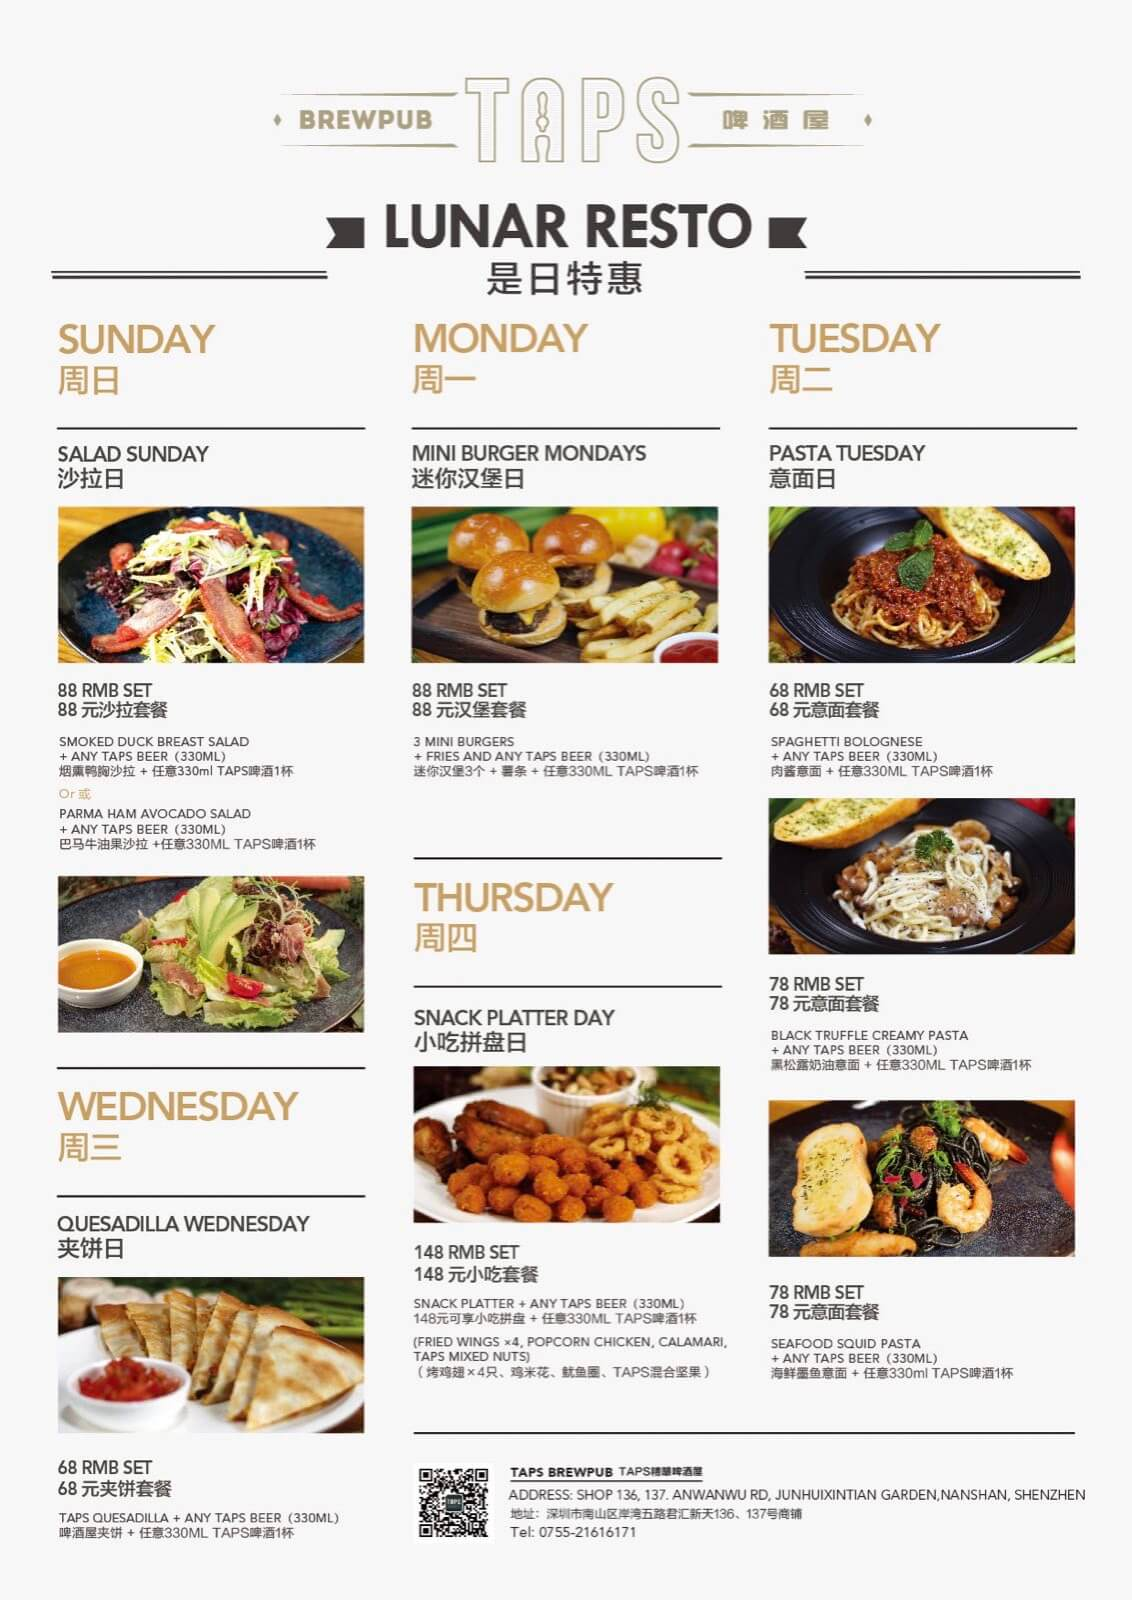 【TAPS】QUESADILLA WEDNESDAY(68元)